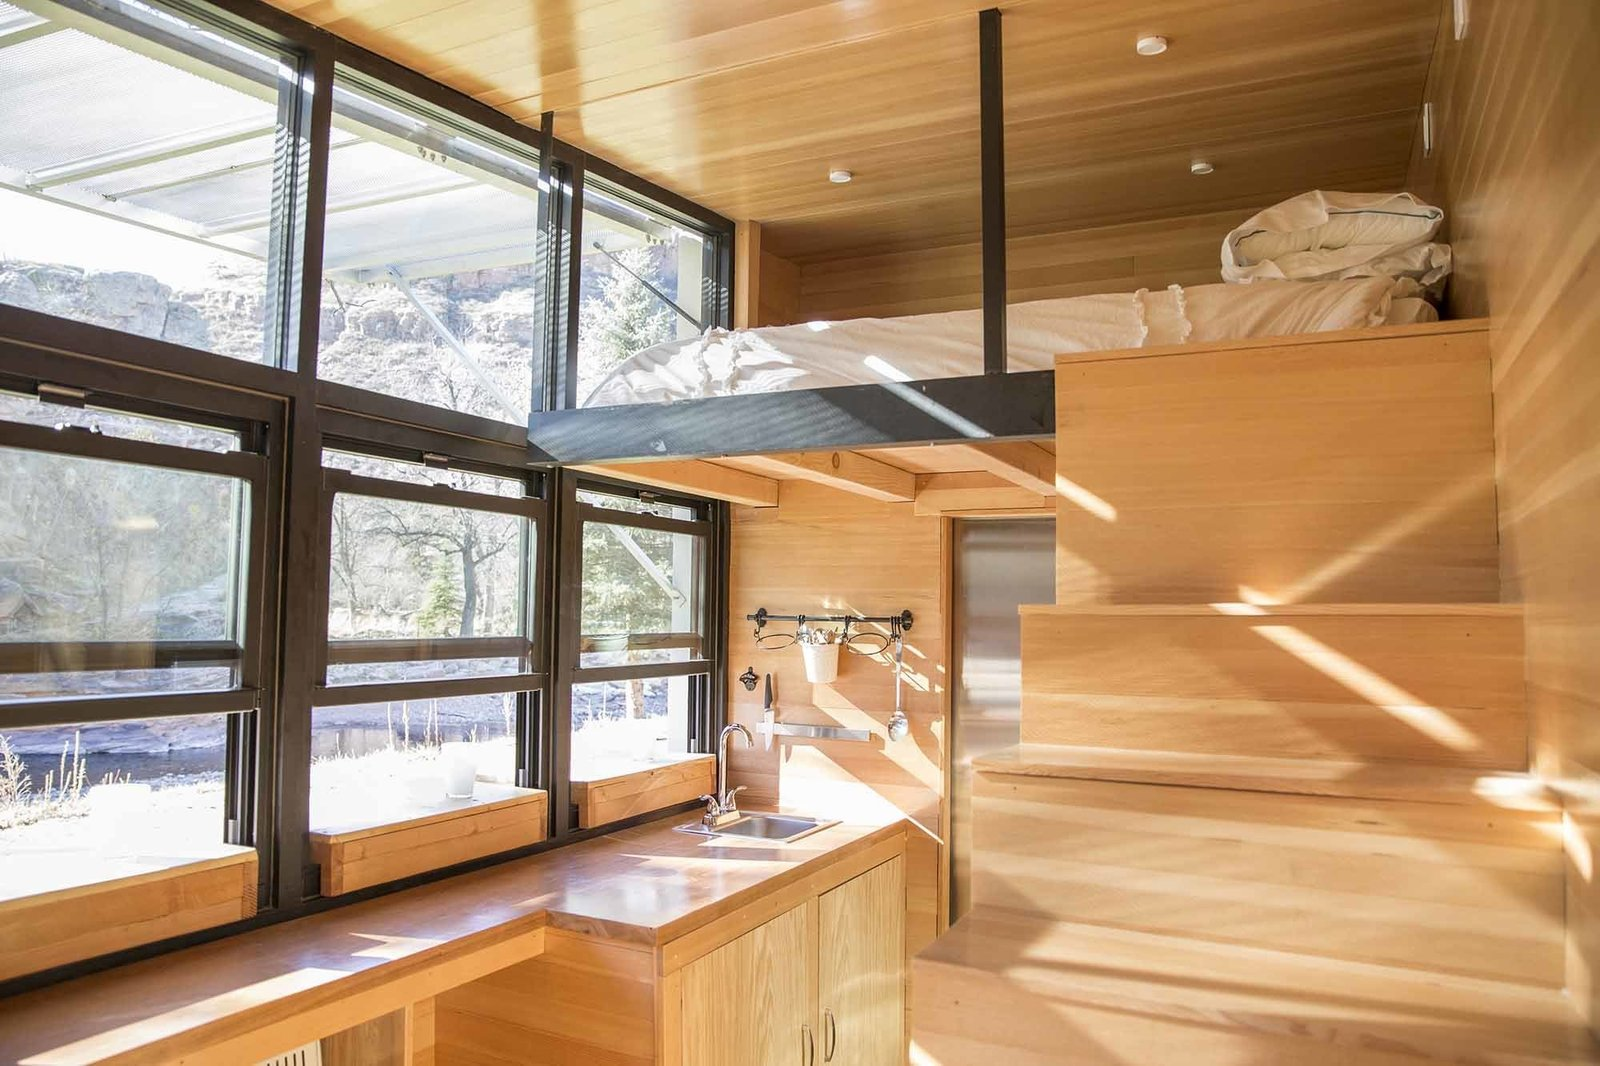 Kitchen, Wood Counter, and Wood Cabinet With a built-in sofa and sleeping loft, ATLAS can accommodate three adult travelers.  A Tiny Trailer Home Harvests Solar Power and Rainwater to Save Energy by Luke Hopping